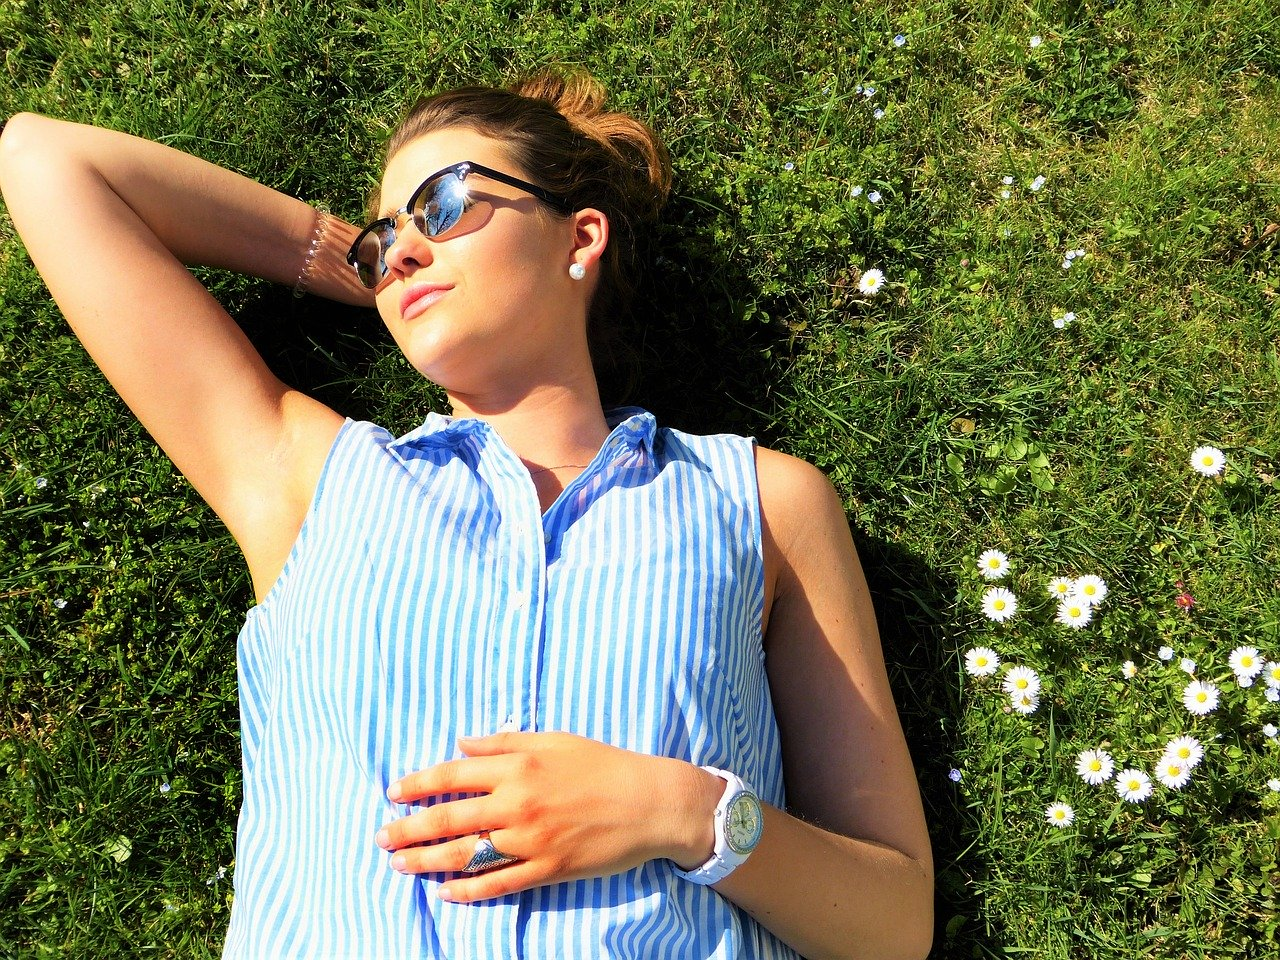 Vitamin D: Why you need it and how to get enough